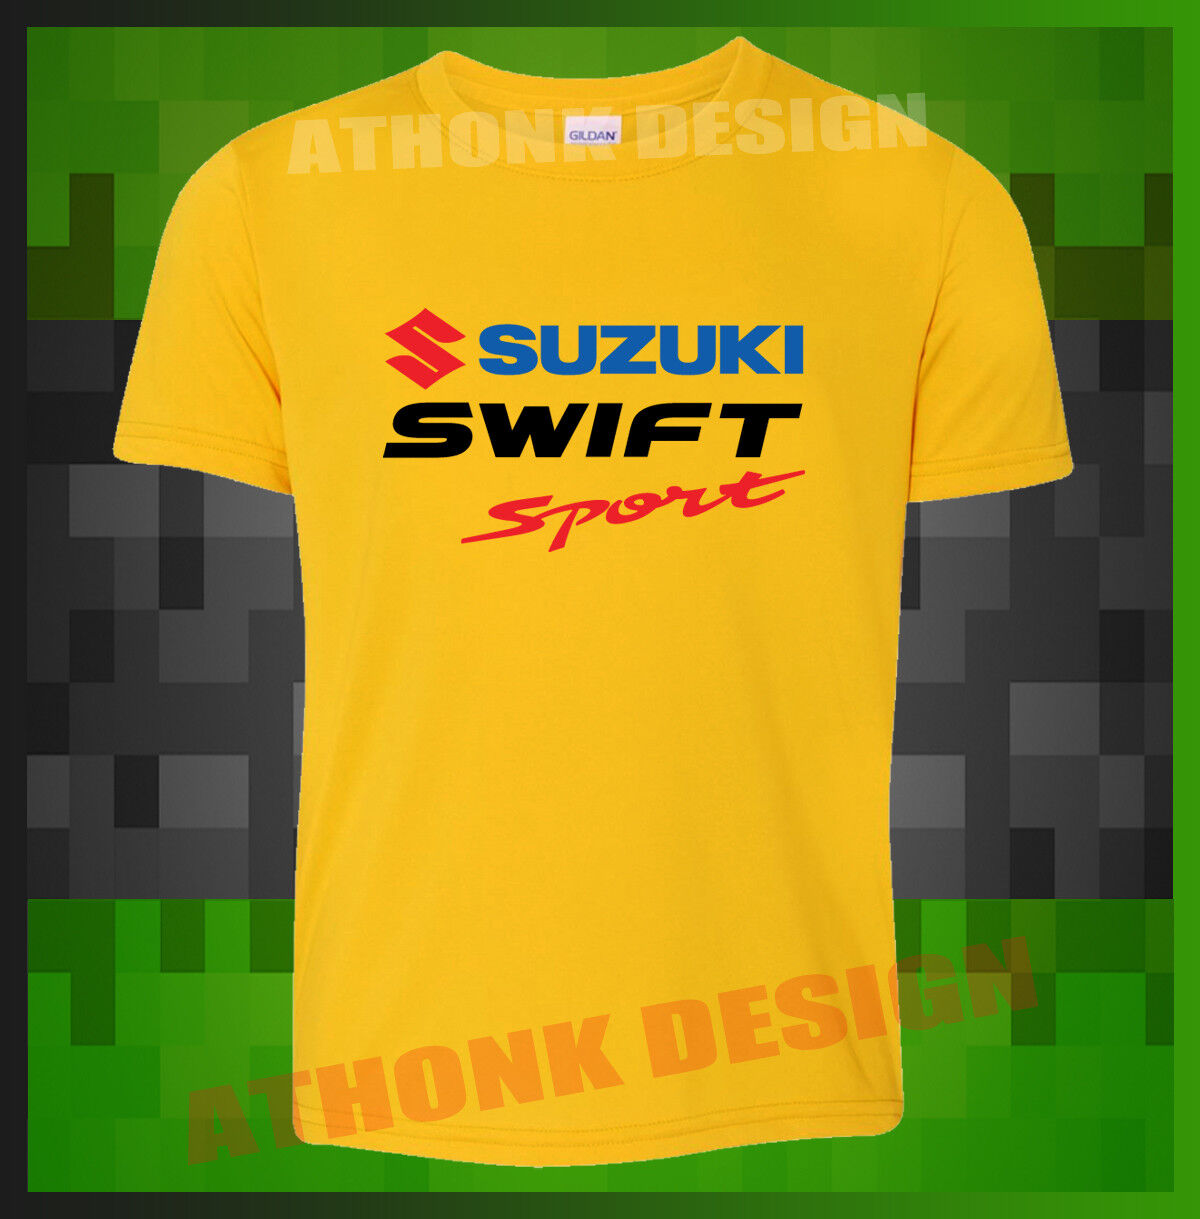 /'Suzuki Swift/' Men/'s Funny T-shirt /'They say Money can/'t buy Happiness.../'